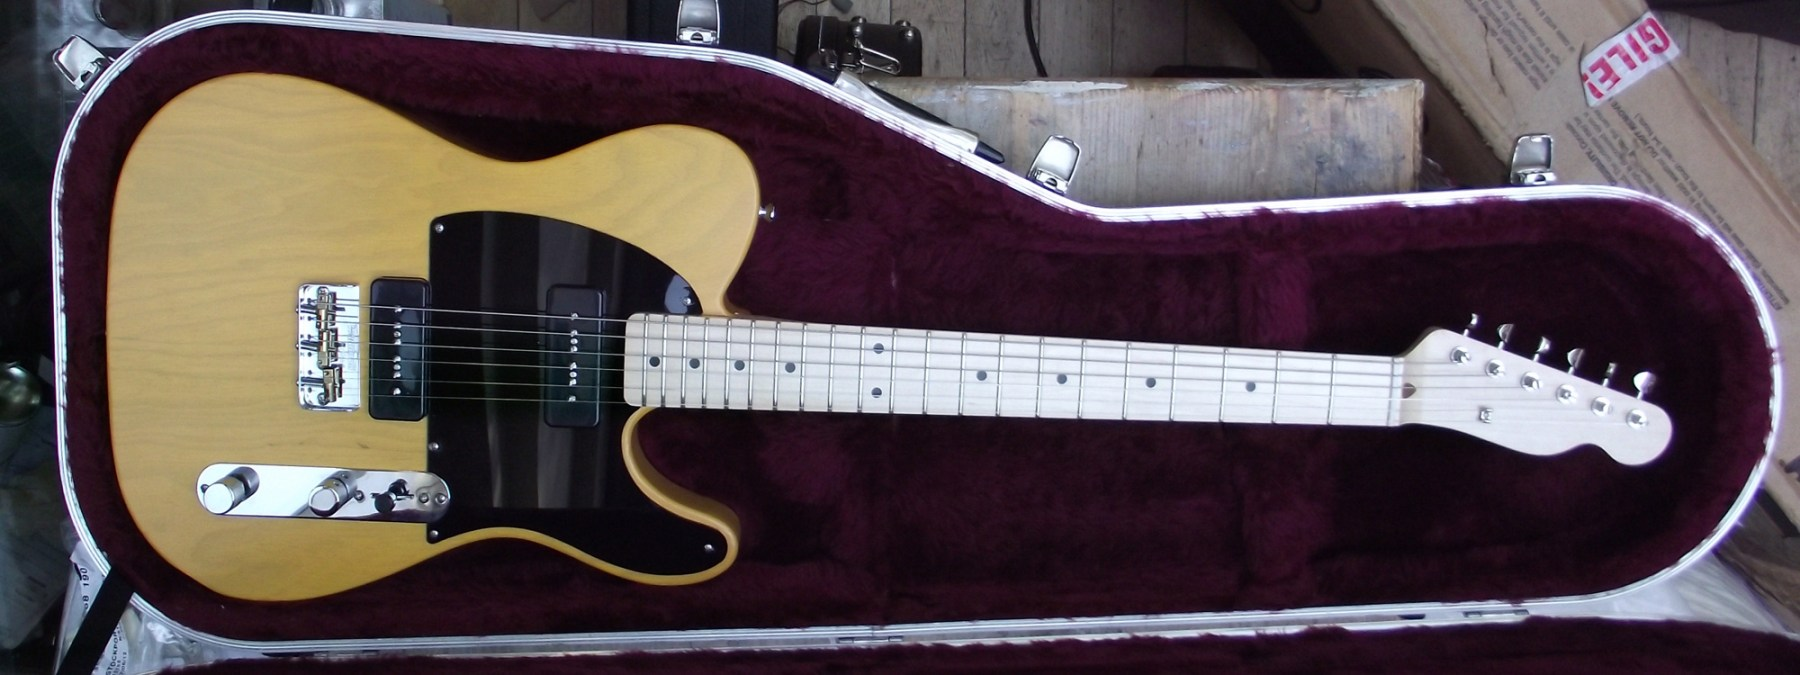 P-90 Telecaster complete